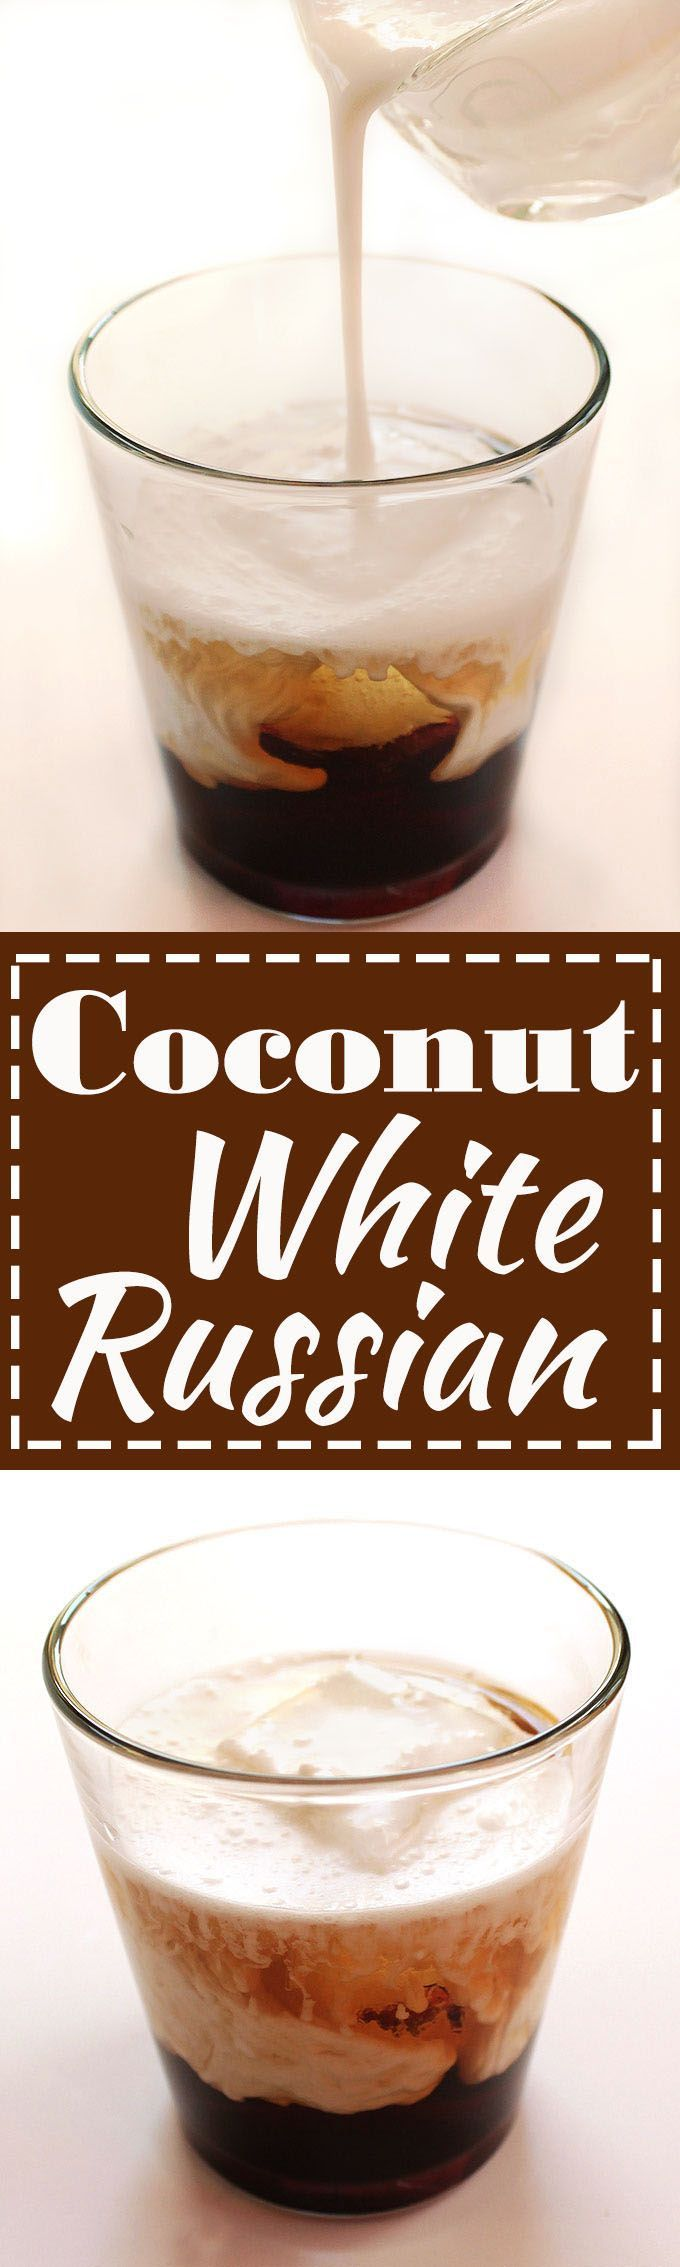 Coconut White Russian - A twist on the classic cocktail. Made with rich coconut milk. Delicious, creamy, and so EASY to make! Vegan and Dairy Free!   Robustrecipes.com